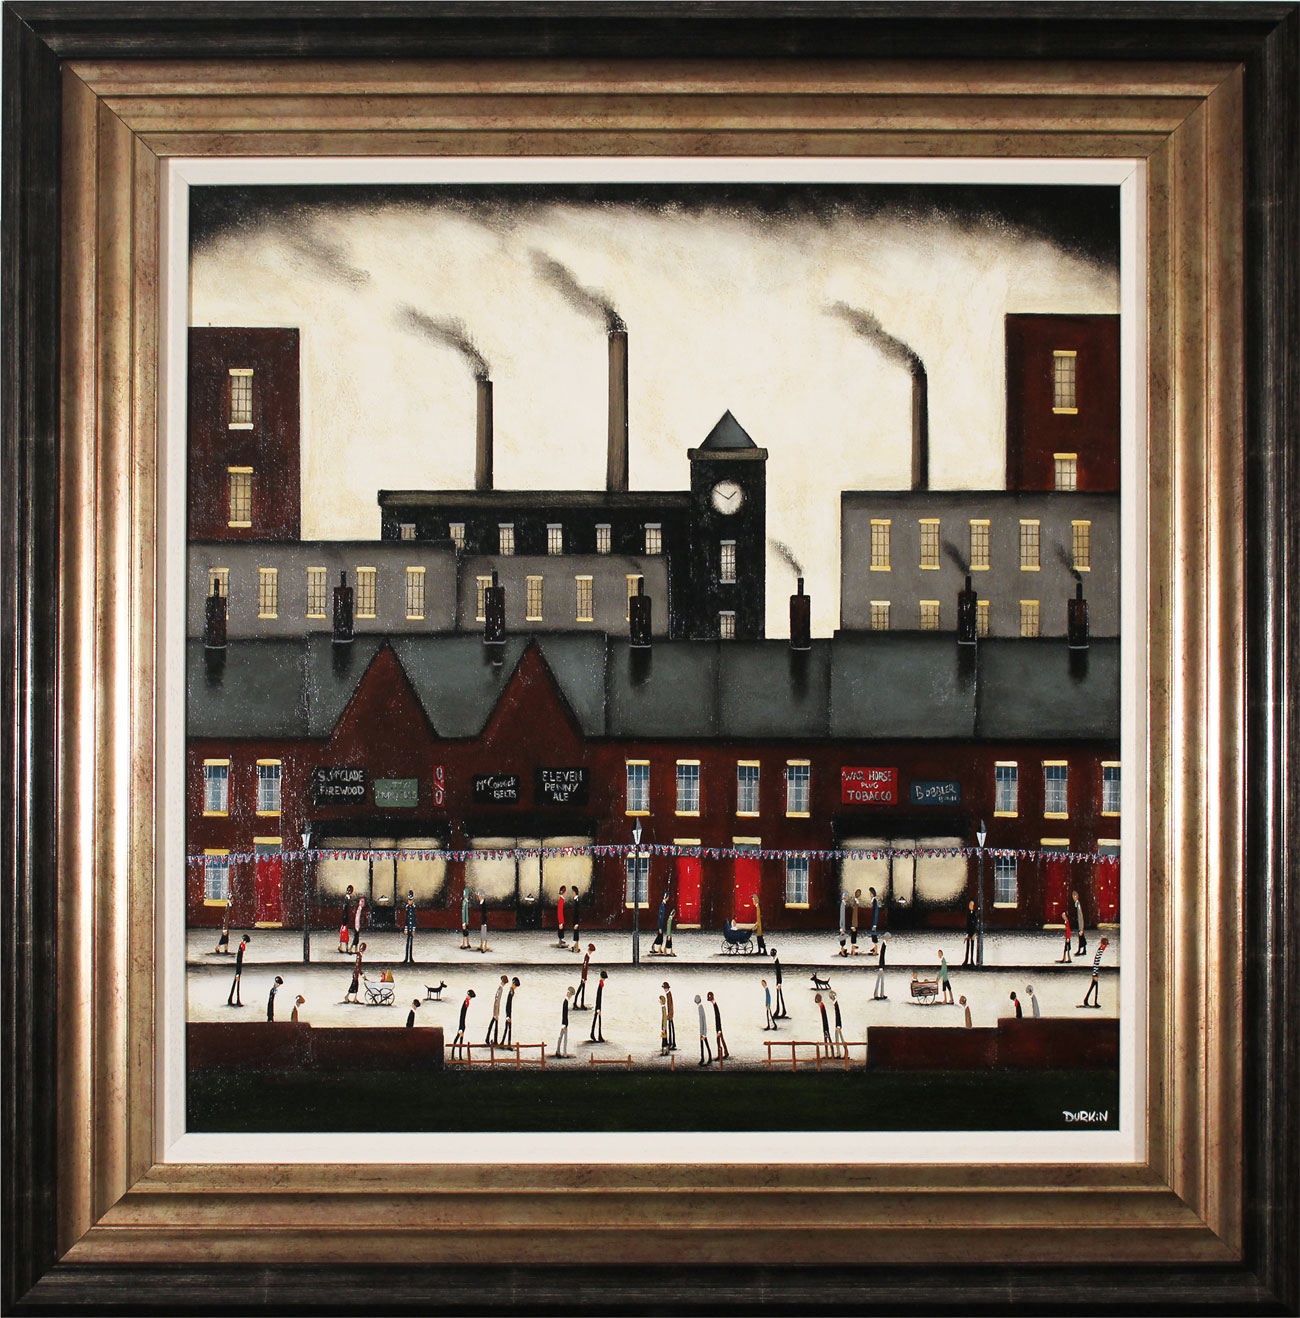 Sean Durkin, Original oil painting on panel, Northern Industry. Click to enlarge